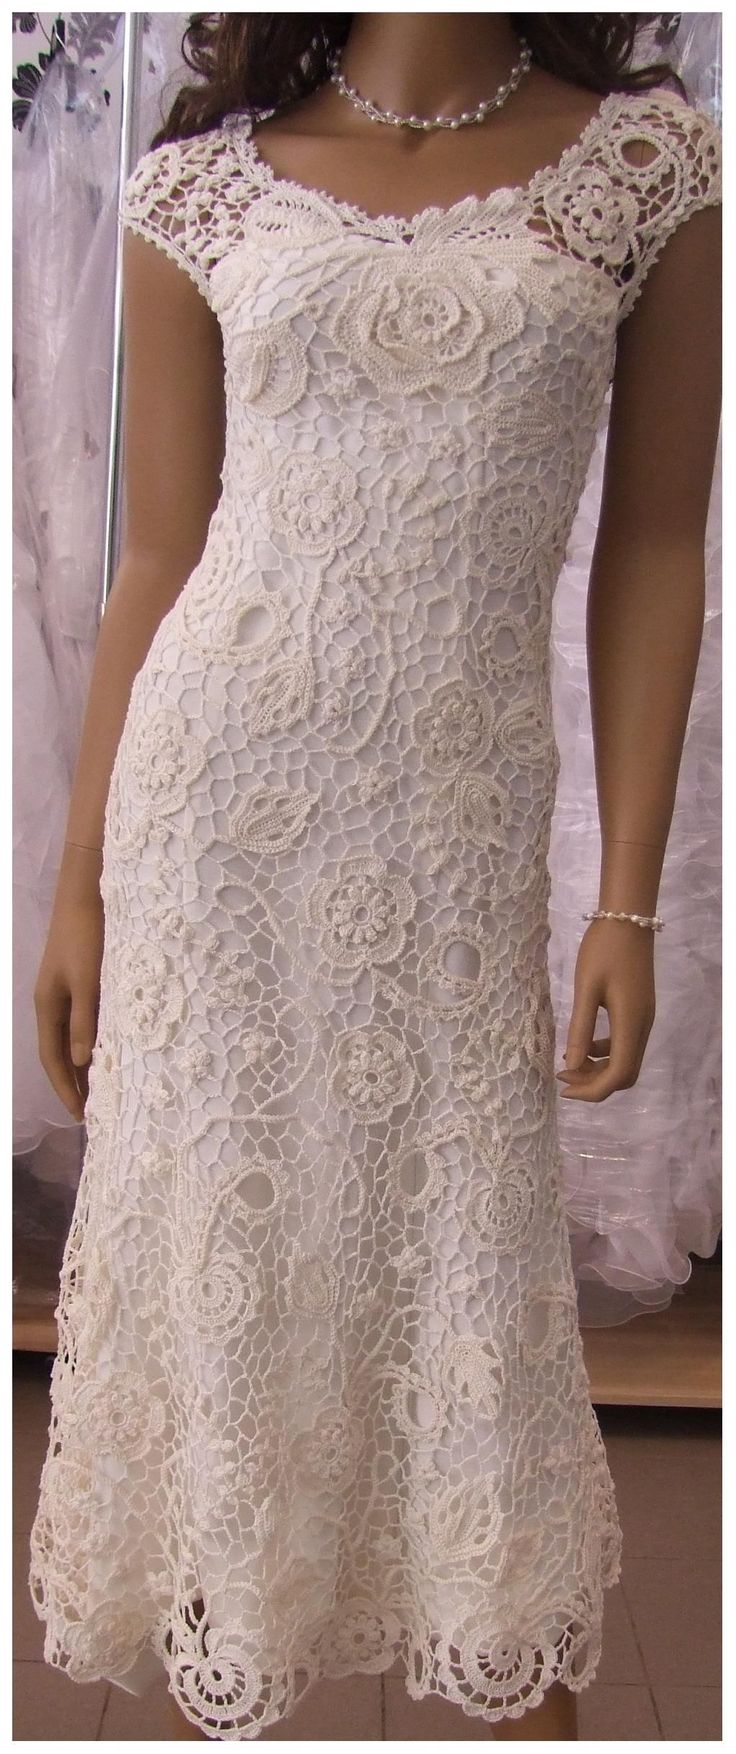 22 Best Crochet Wedding Dress Images On Pinterest